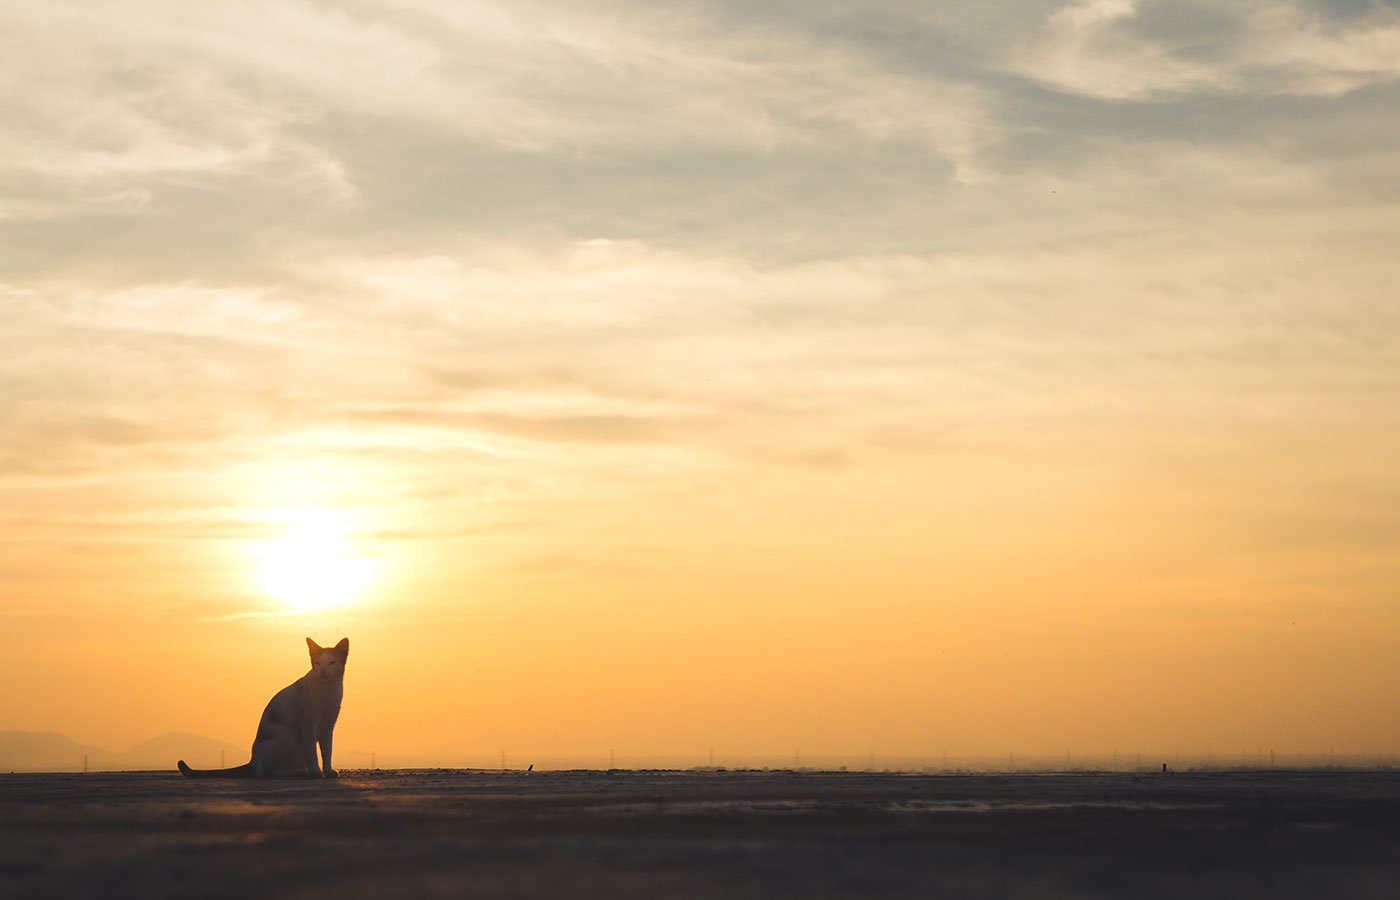 Cute cat on the roof,sunset background,cat looking - Image